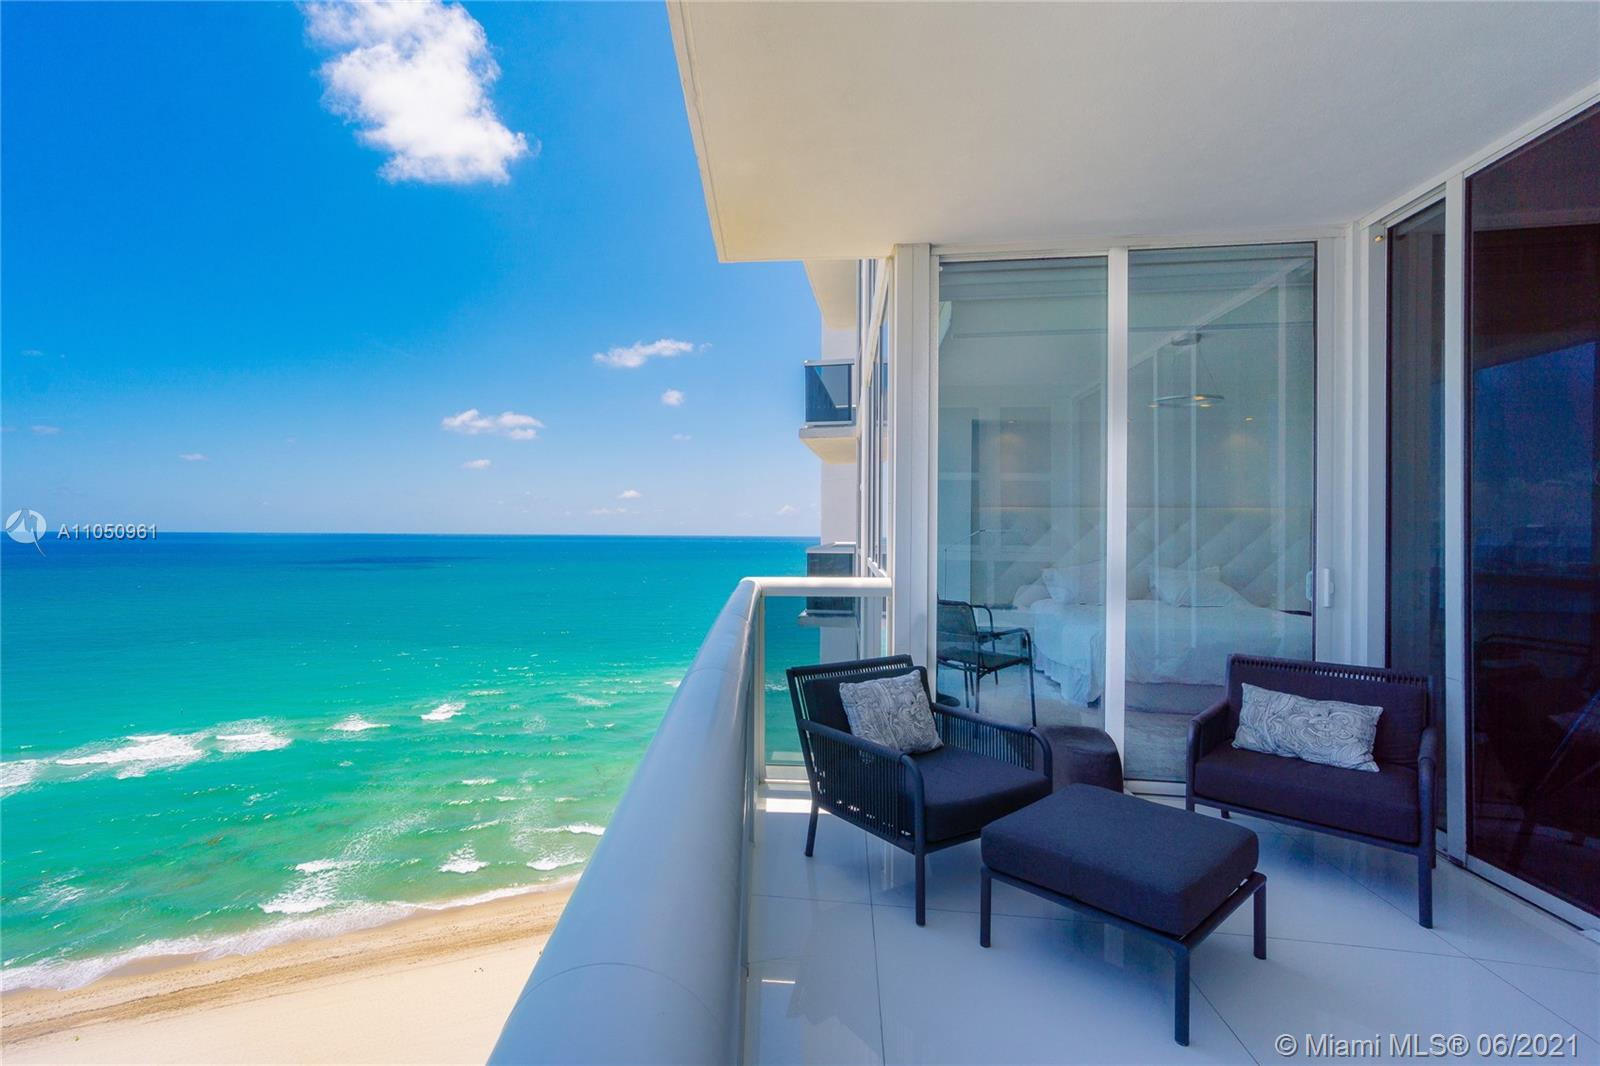 Step in from your private elevator entry to this extraordinary direct ocean residence with panoramic views of the ocean. This unit has been decorated by ARTEFACTO interior designer. It includes ARTEFACTO living room, dining rooms & bedroom furniture. Top-of-the-line kitchen with Italian cabinets and Miele/Sub-Zero appliances. Trump Royale is part of an 11-acre ocean front property with features and amenities of a 5–star resort. It includes an 8000 Sf fitness facility, owner's spa, tennis court, pool & room service, bar, restaurant, and more. Live in the spectacular Sunny Isles Beach right on the ocean and benefit all the Miami life style. Minutes to Bal Harbour Shops and Aventura Mall.